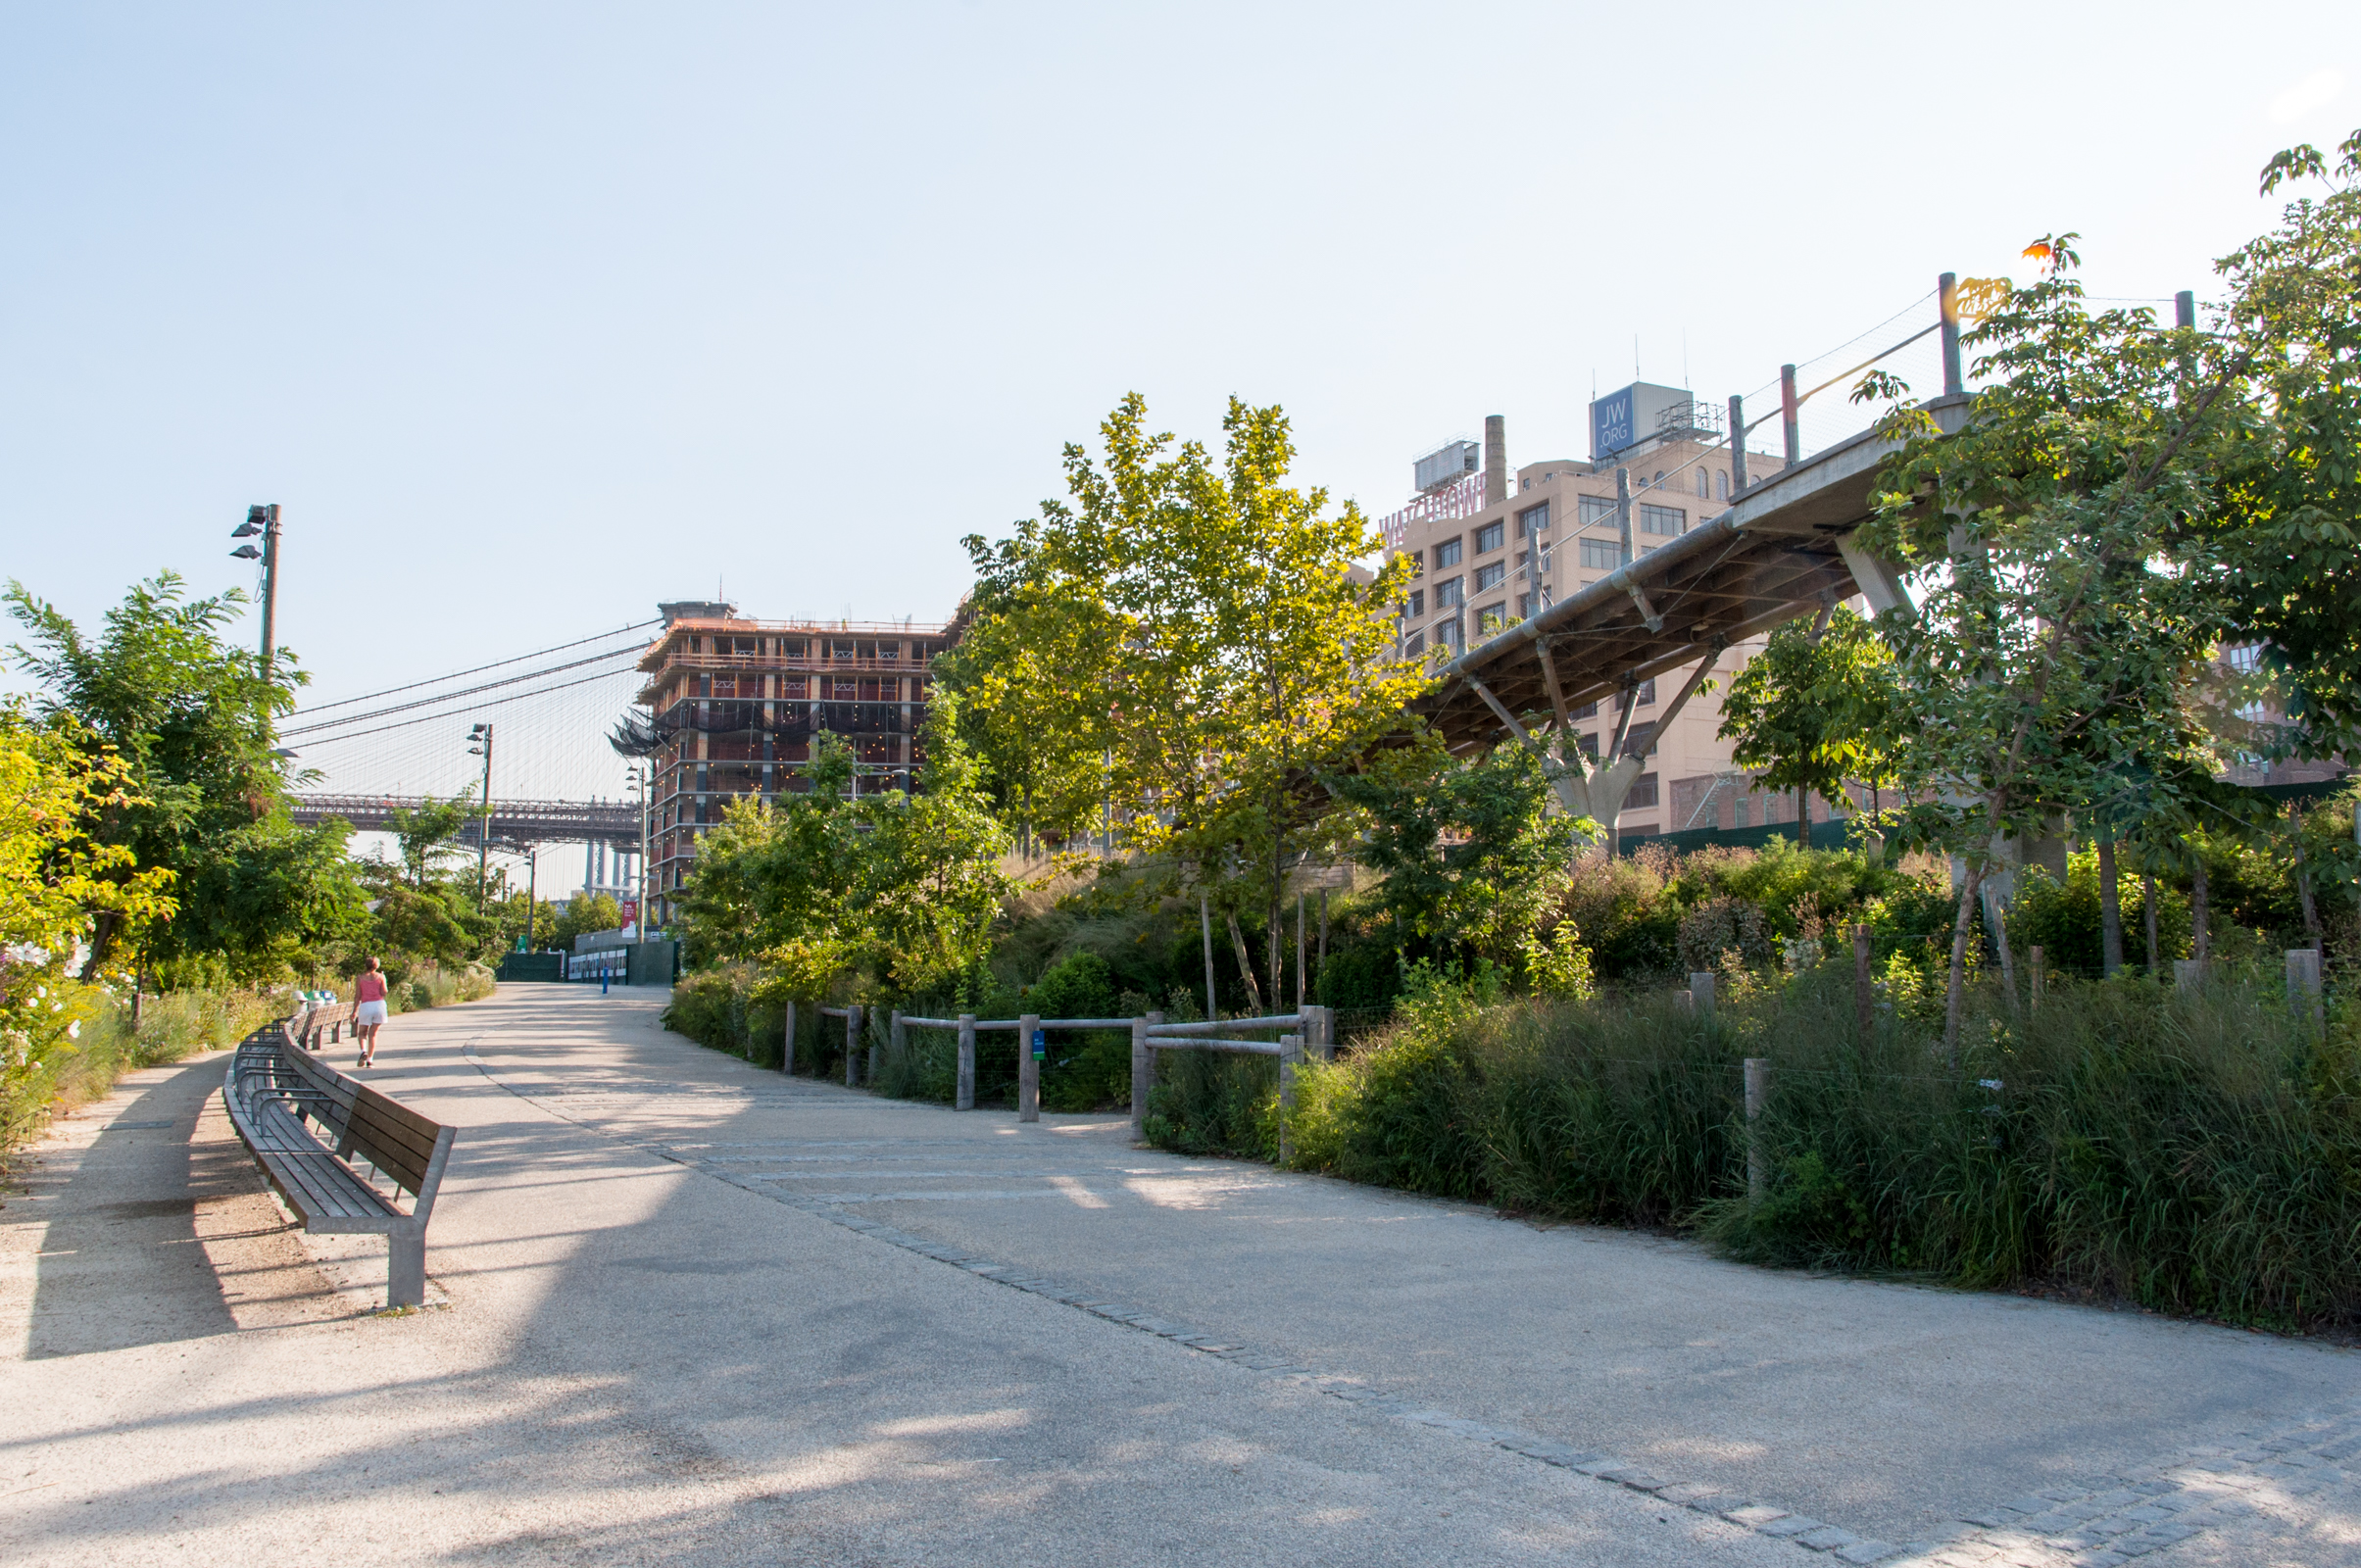 Looking north along the Brooklyn Bridge Park Greenway with Squibb Park Bridge to the right.